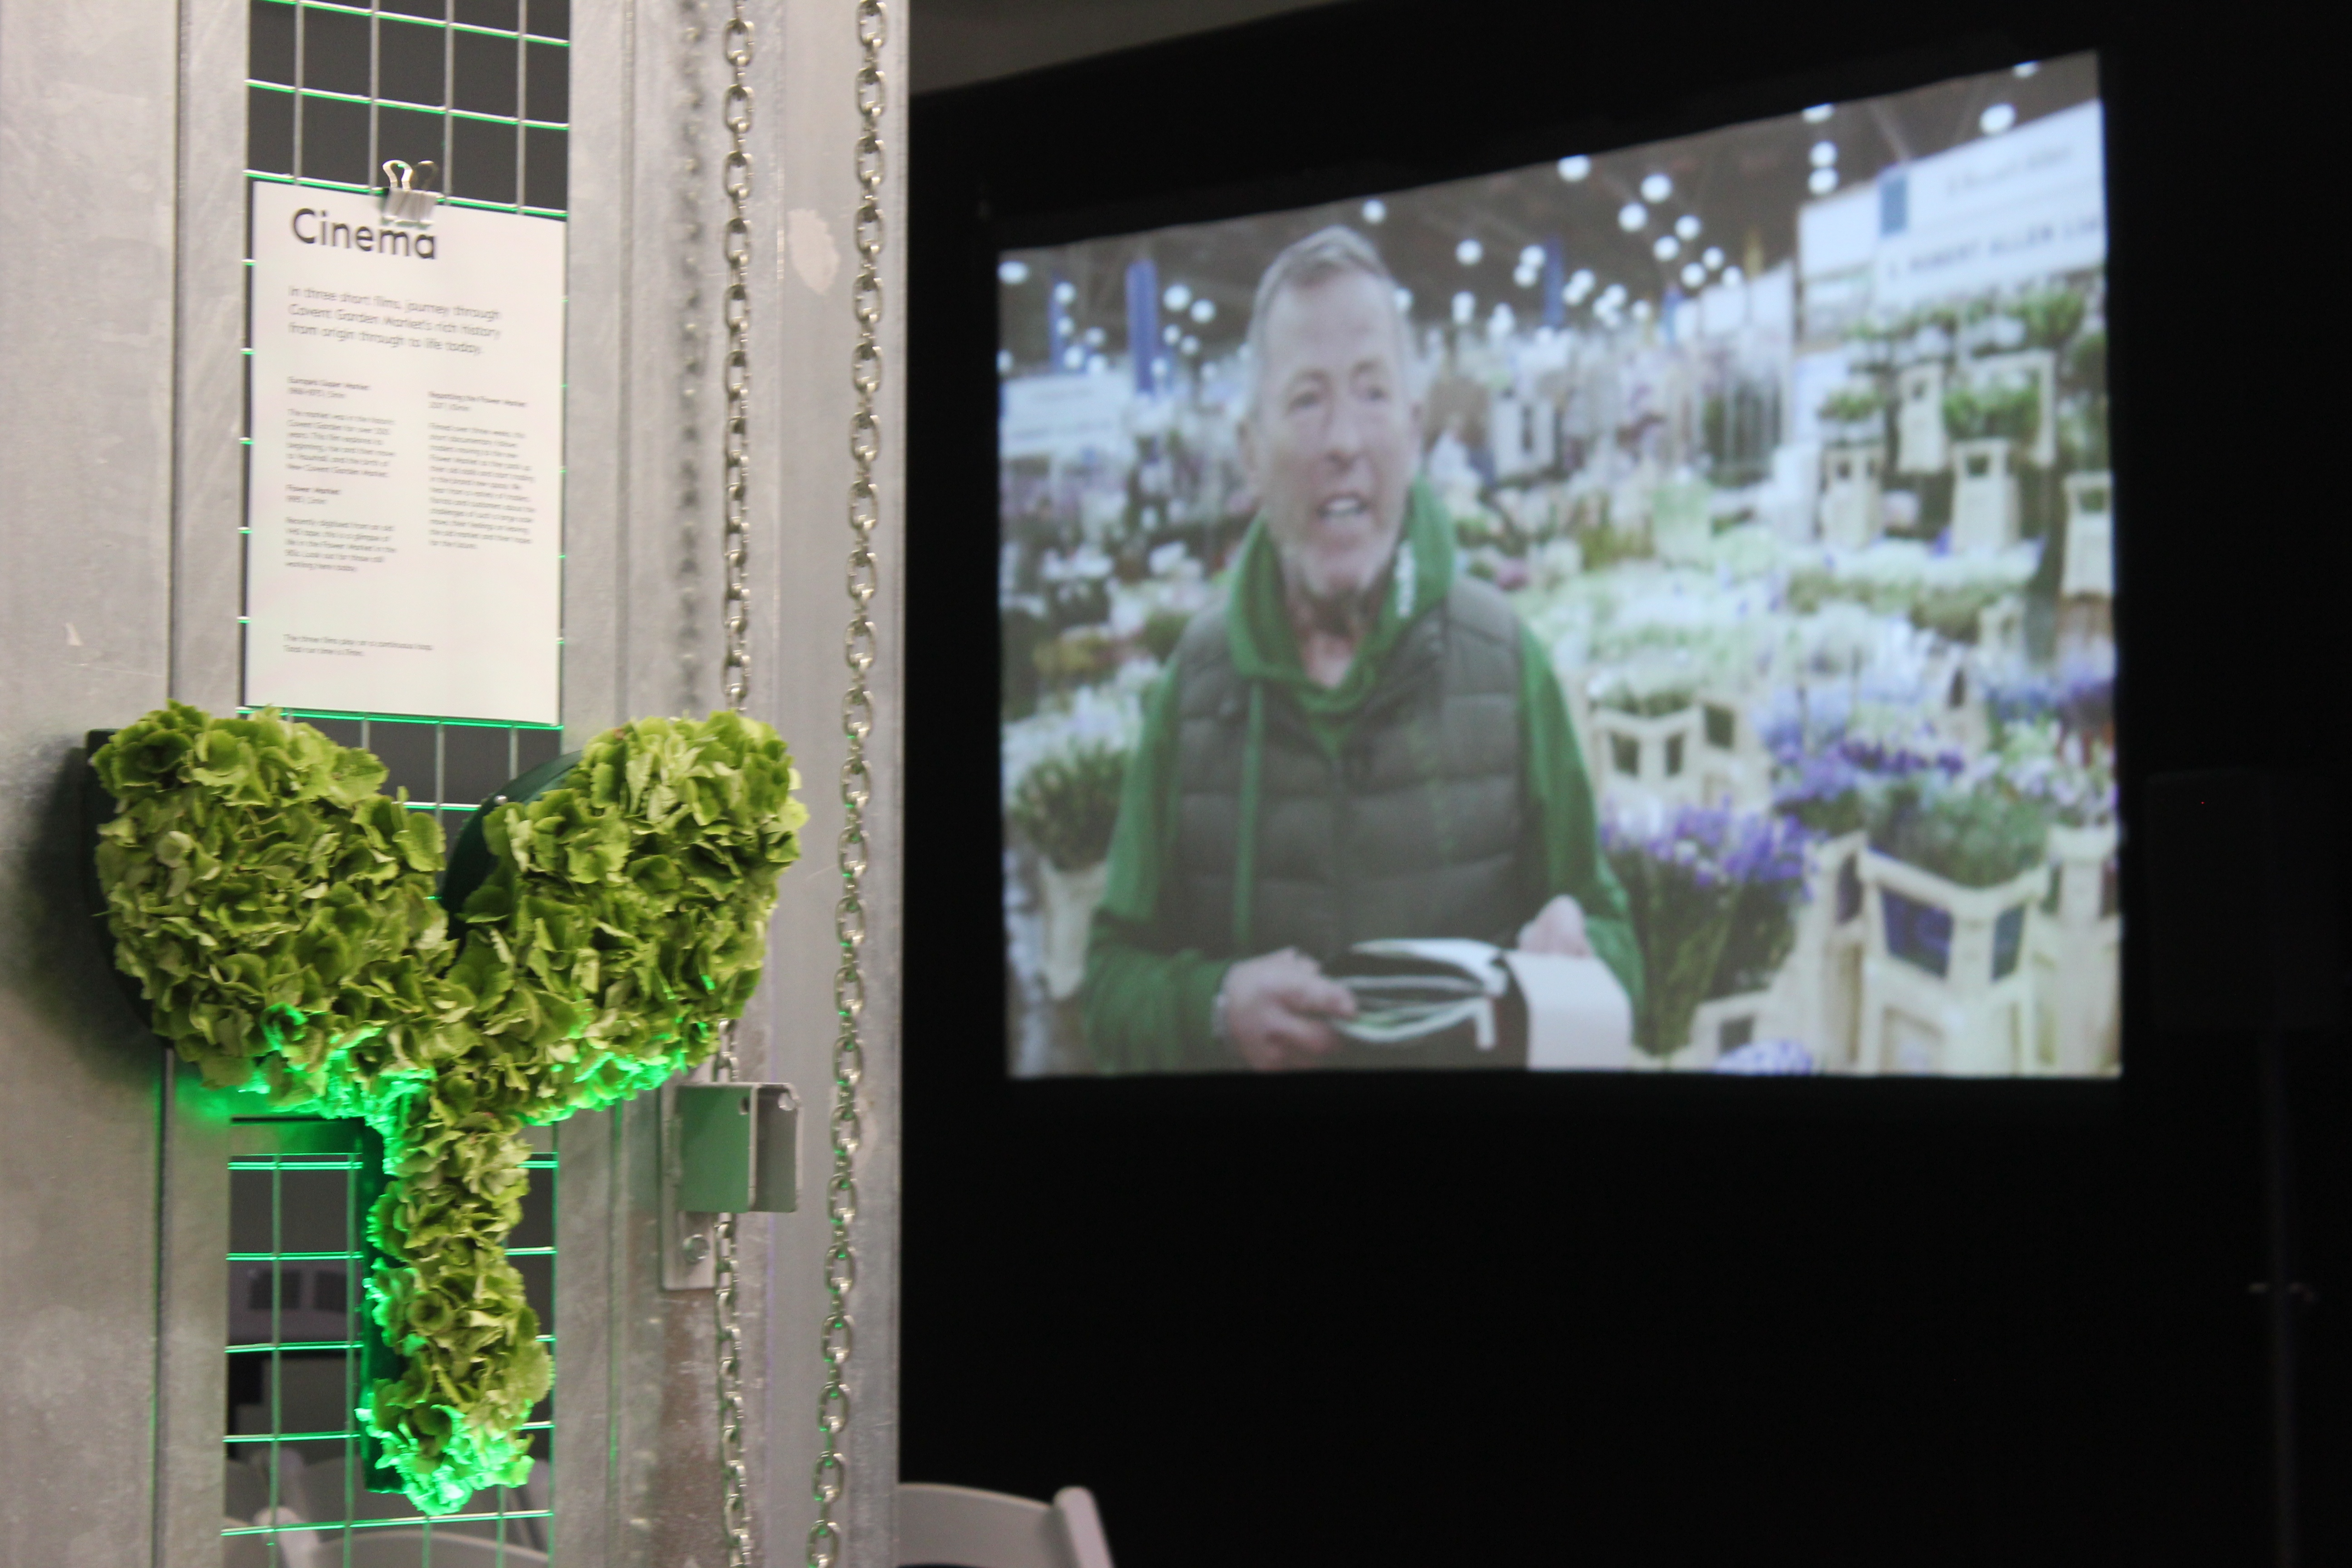 bringing chocolate films to new covent garden market